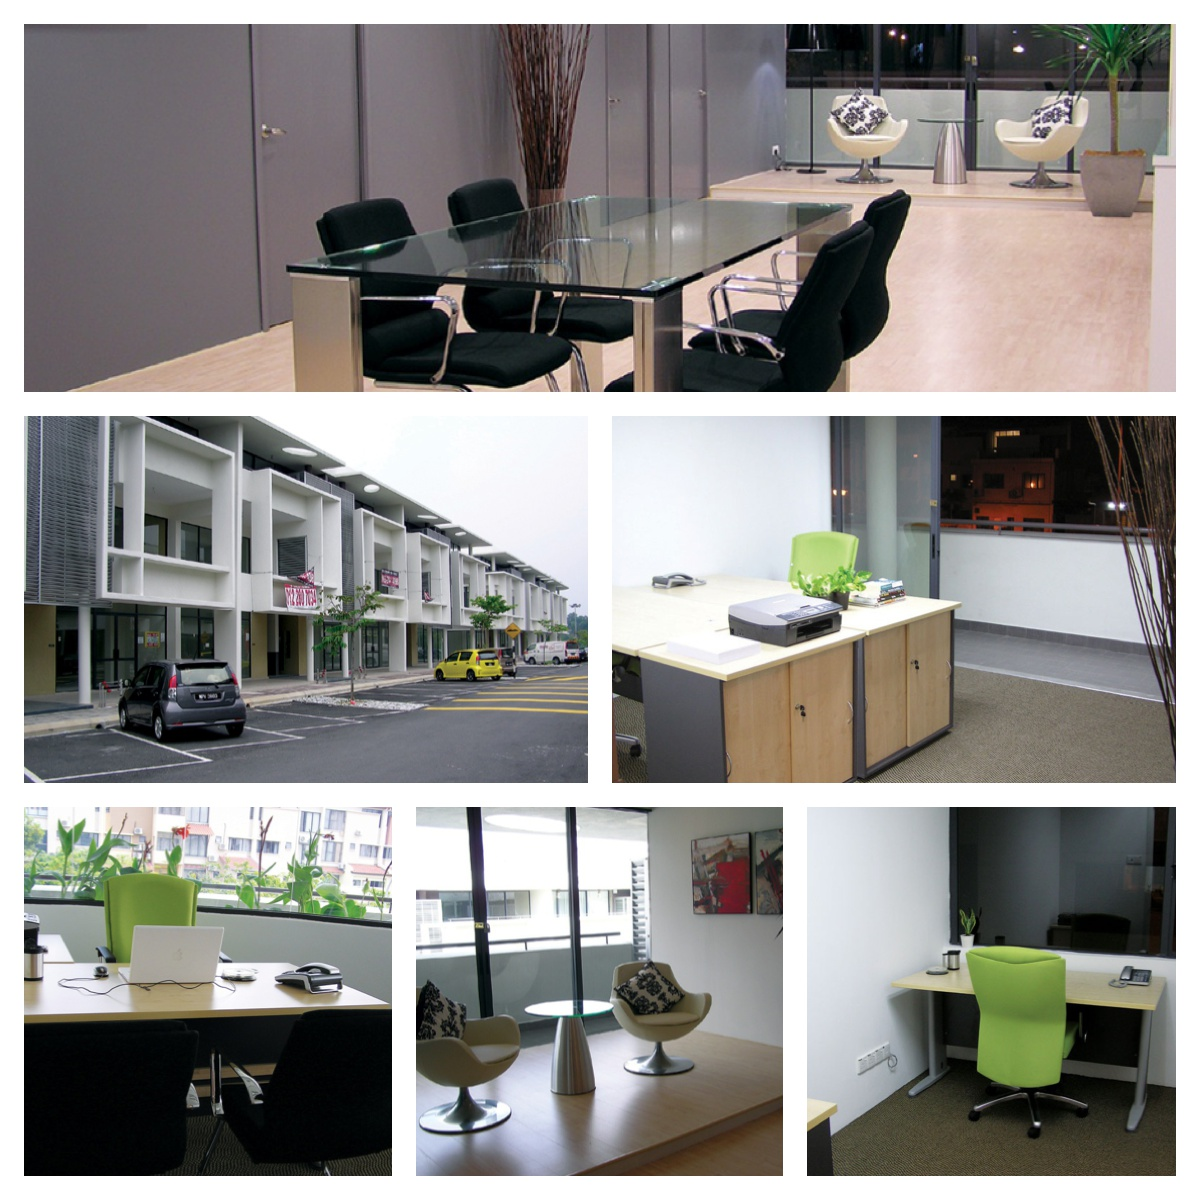 Place For Rent Near Me: Office Space For Rent Near Me